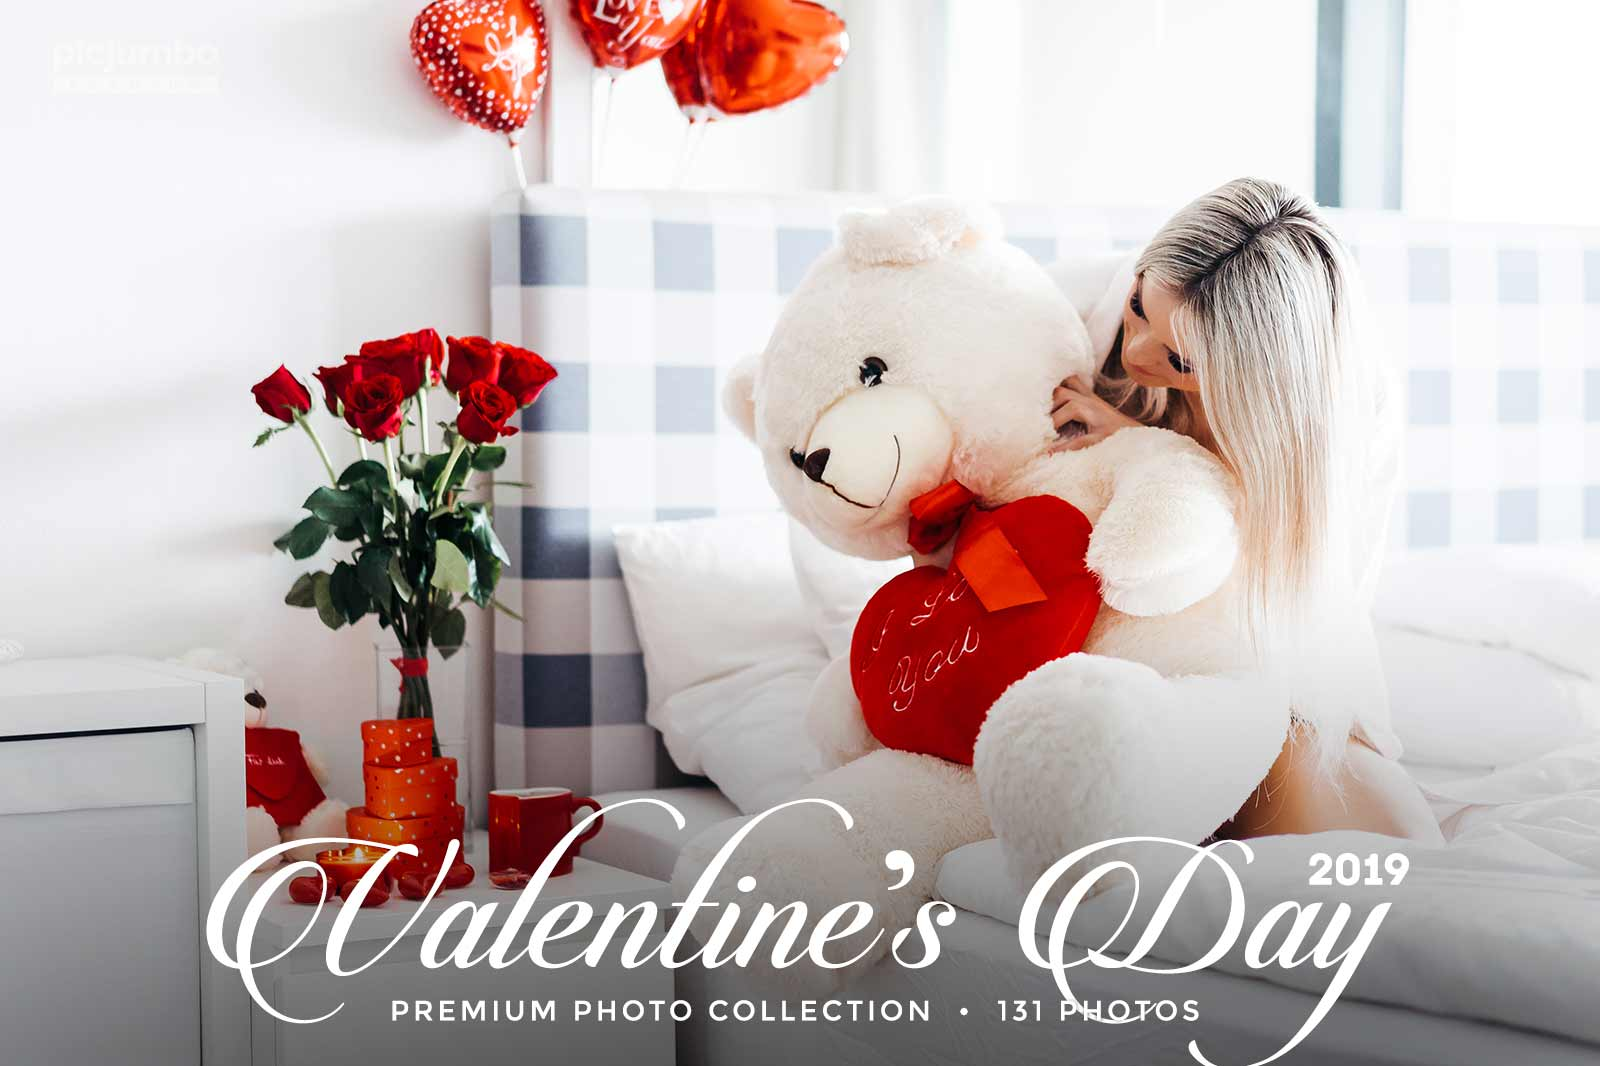 valentines-day-stock-photos-premium.jpg